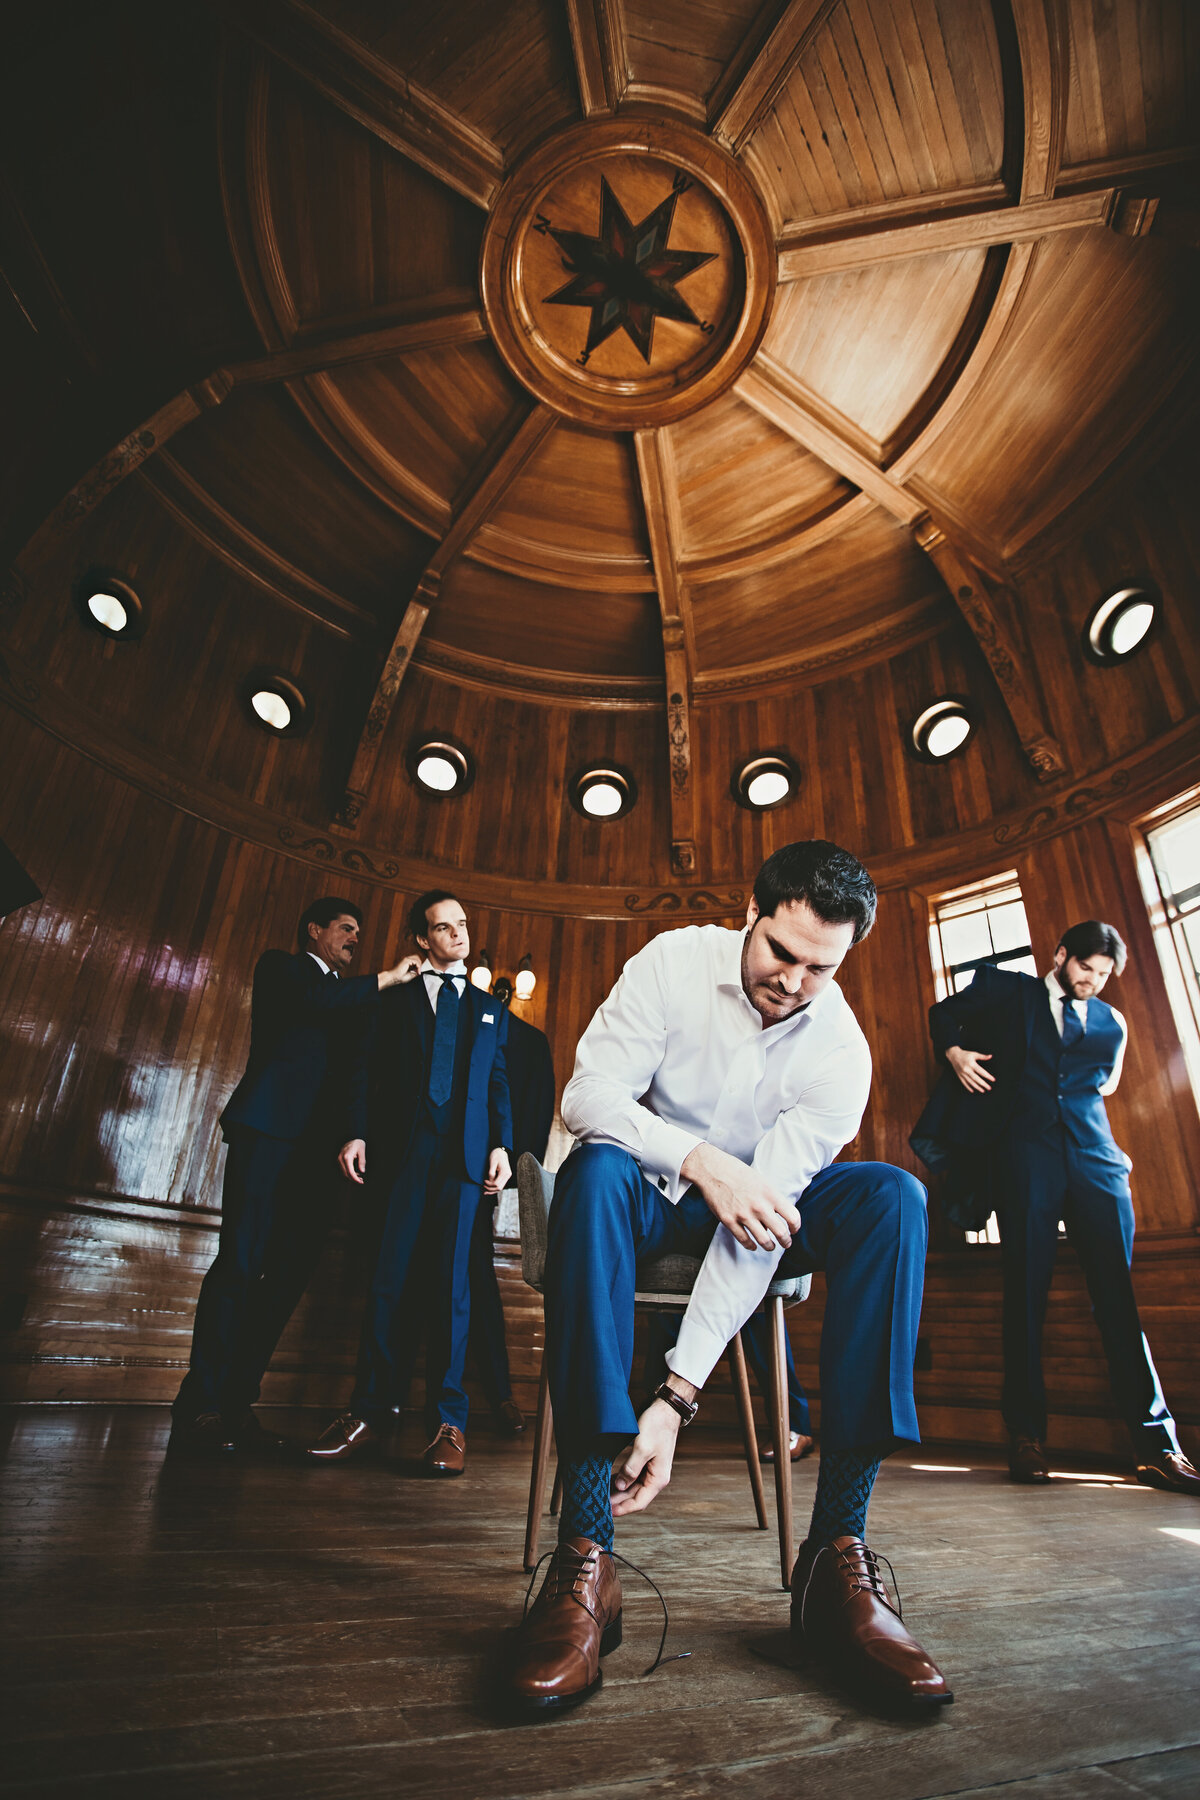 A picture of the groom and two groomsmen getting dressed for the wedding ceremony in a handsome round room with wooden walls and ceiling at the ceremony venue by Garry & Stacy Photography Co - Tampa FL wedding photographer